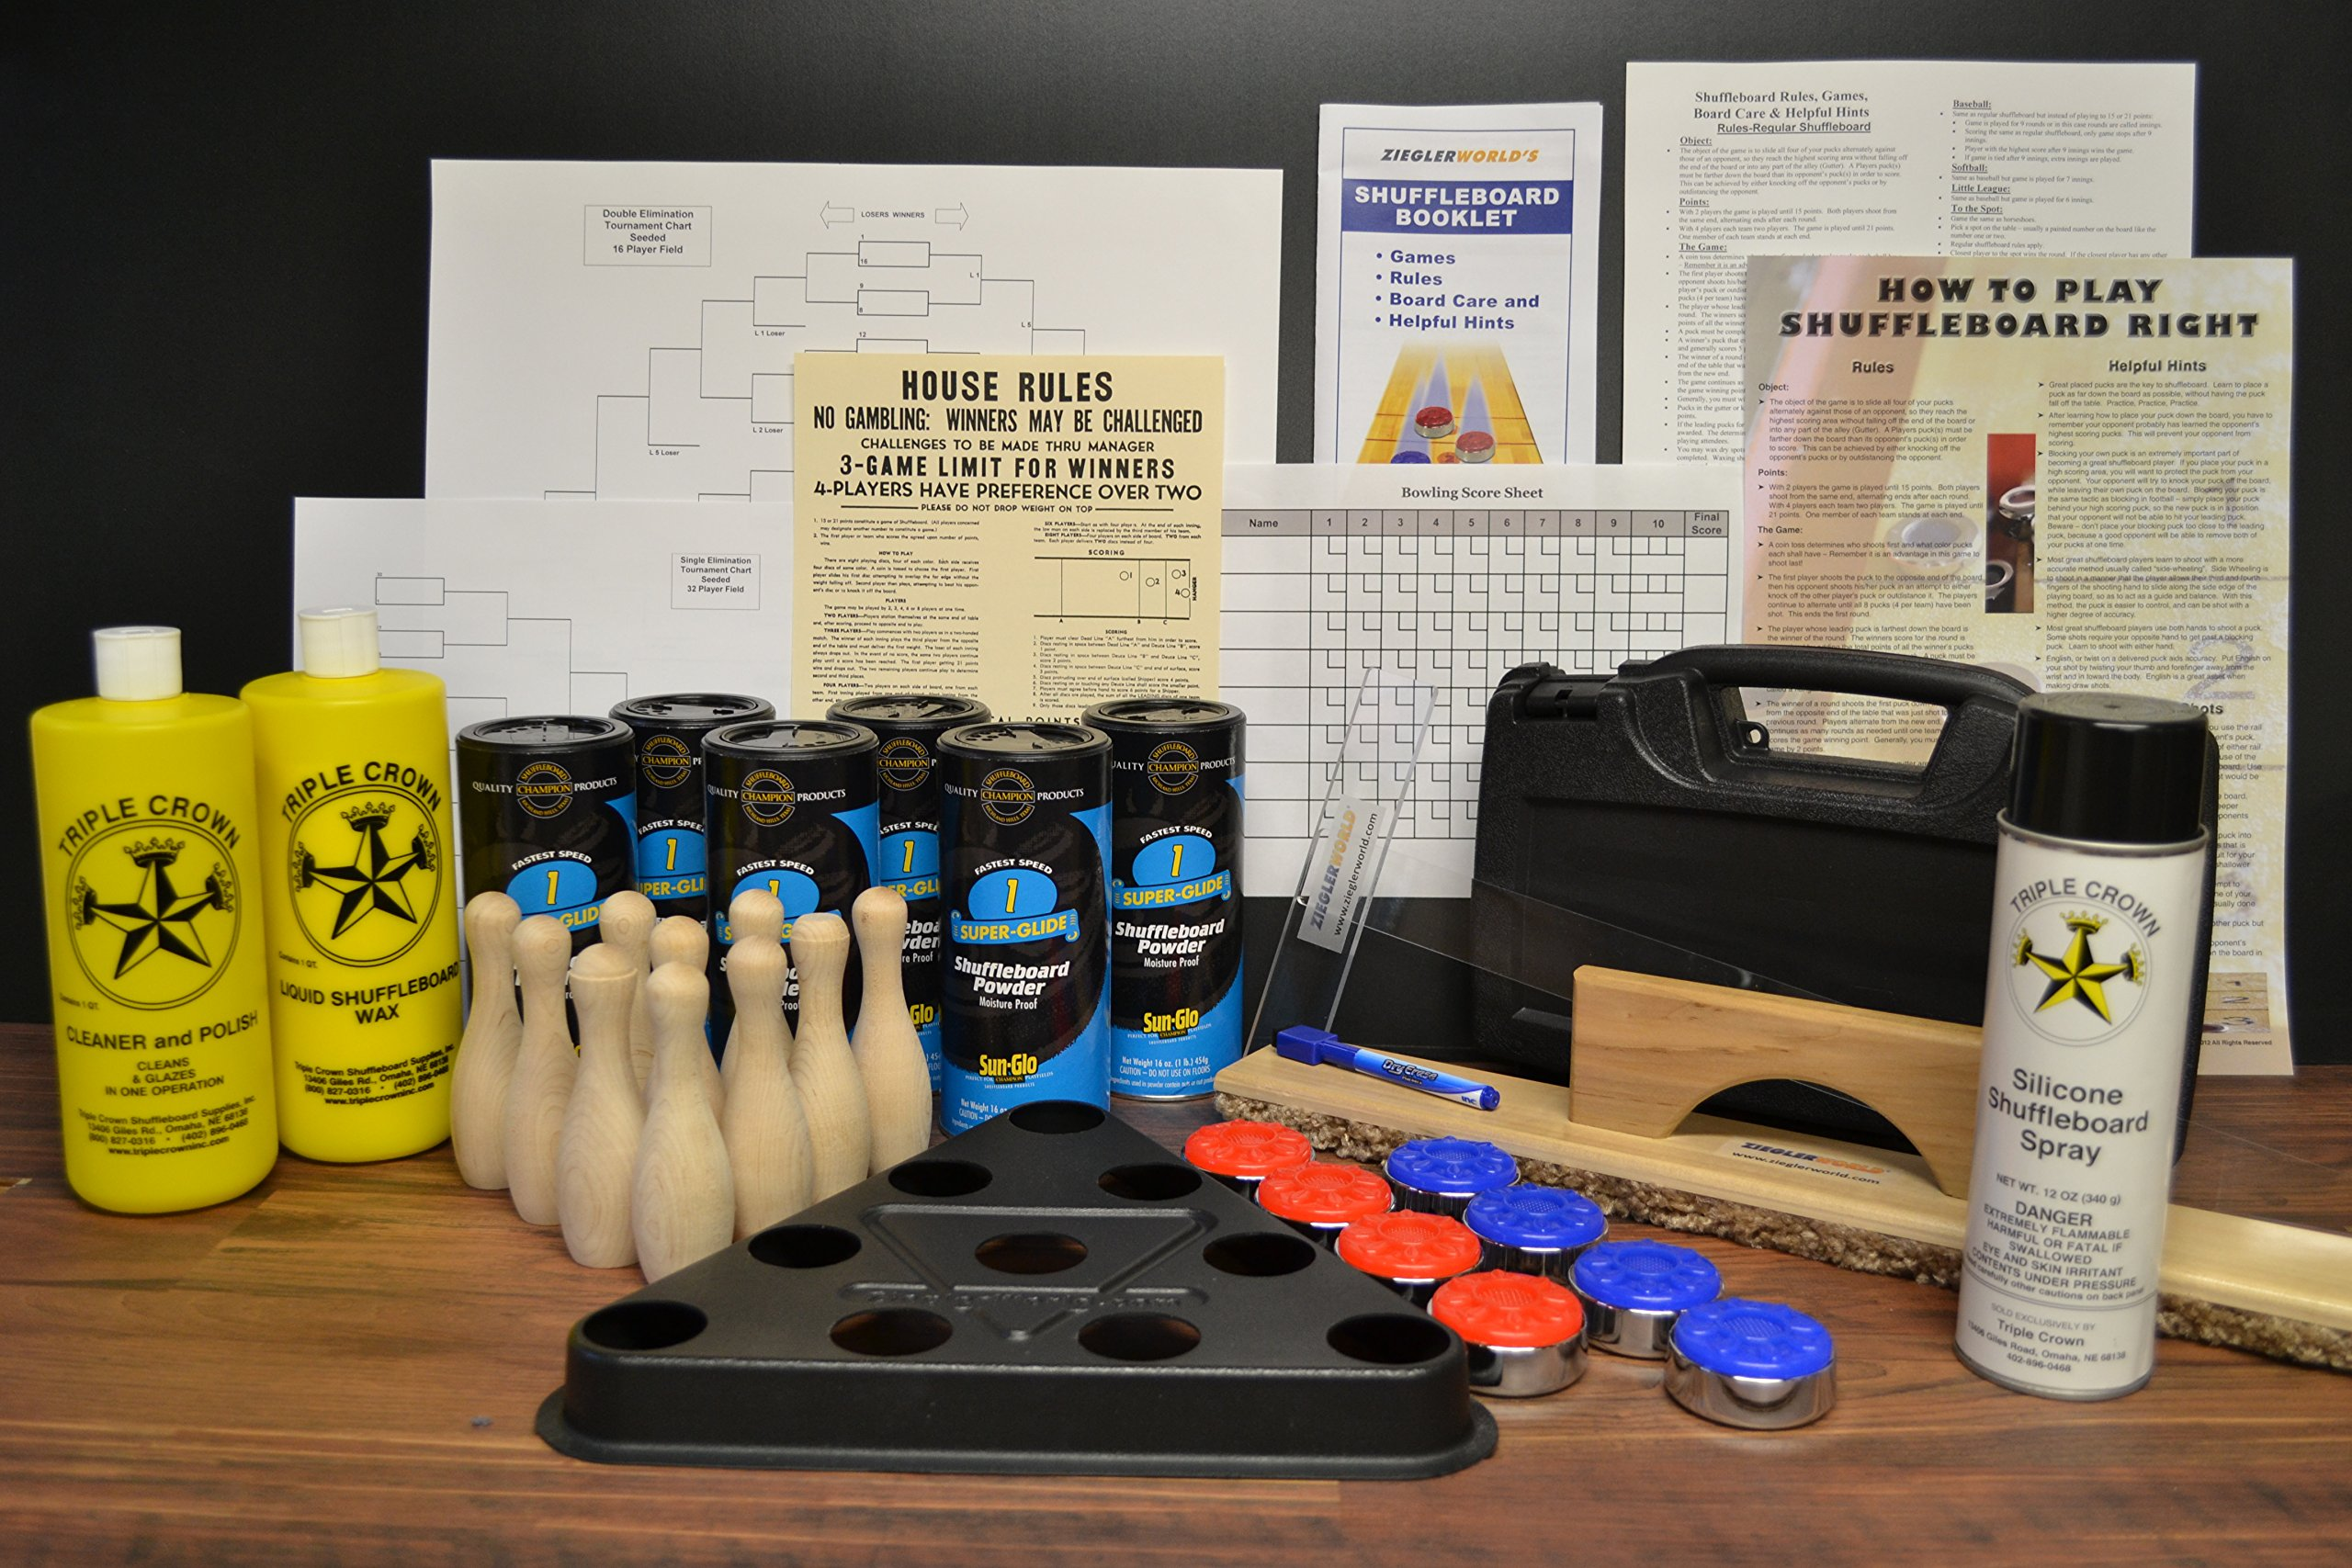 Table Shuffleboard Pucks - Weights Wax Everything Kit Package Deal! by Zieglerworld (Image #1)